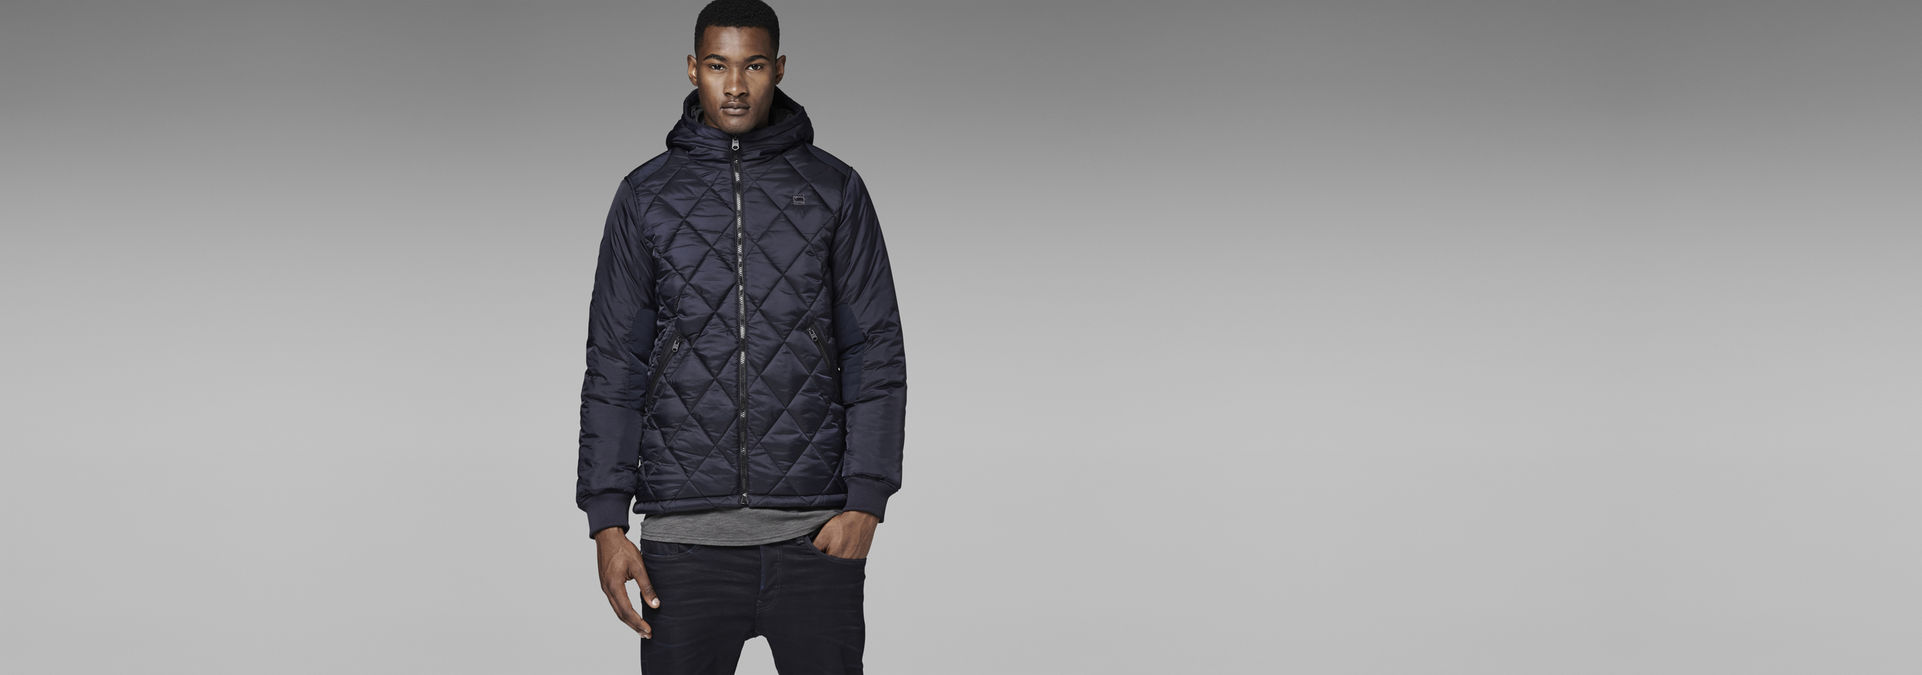 090da900926 G-Star RAW® FIBRICK HOODED JACKET Dark blue model front ...